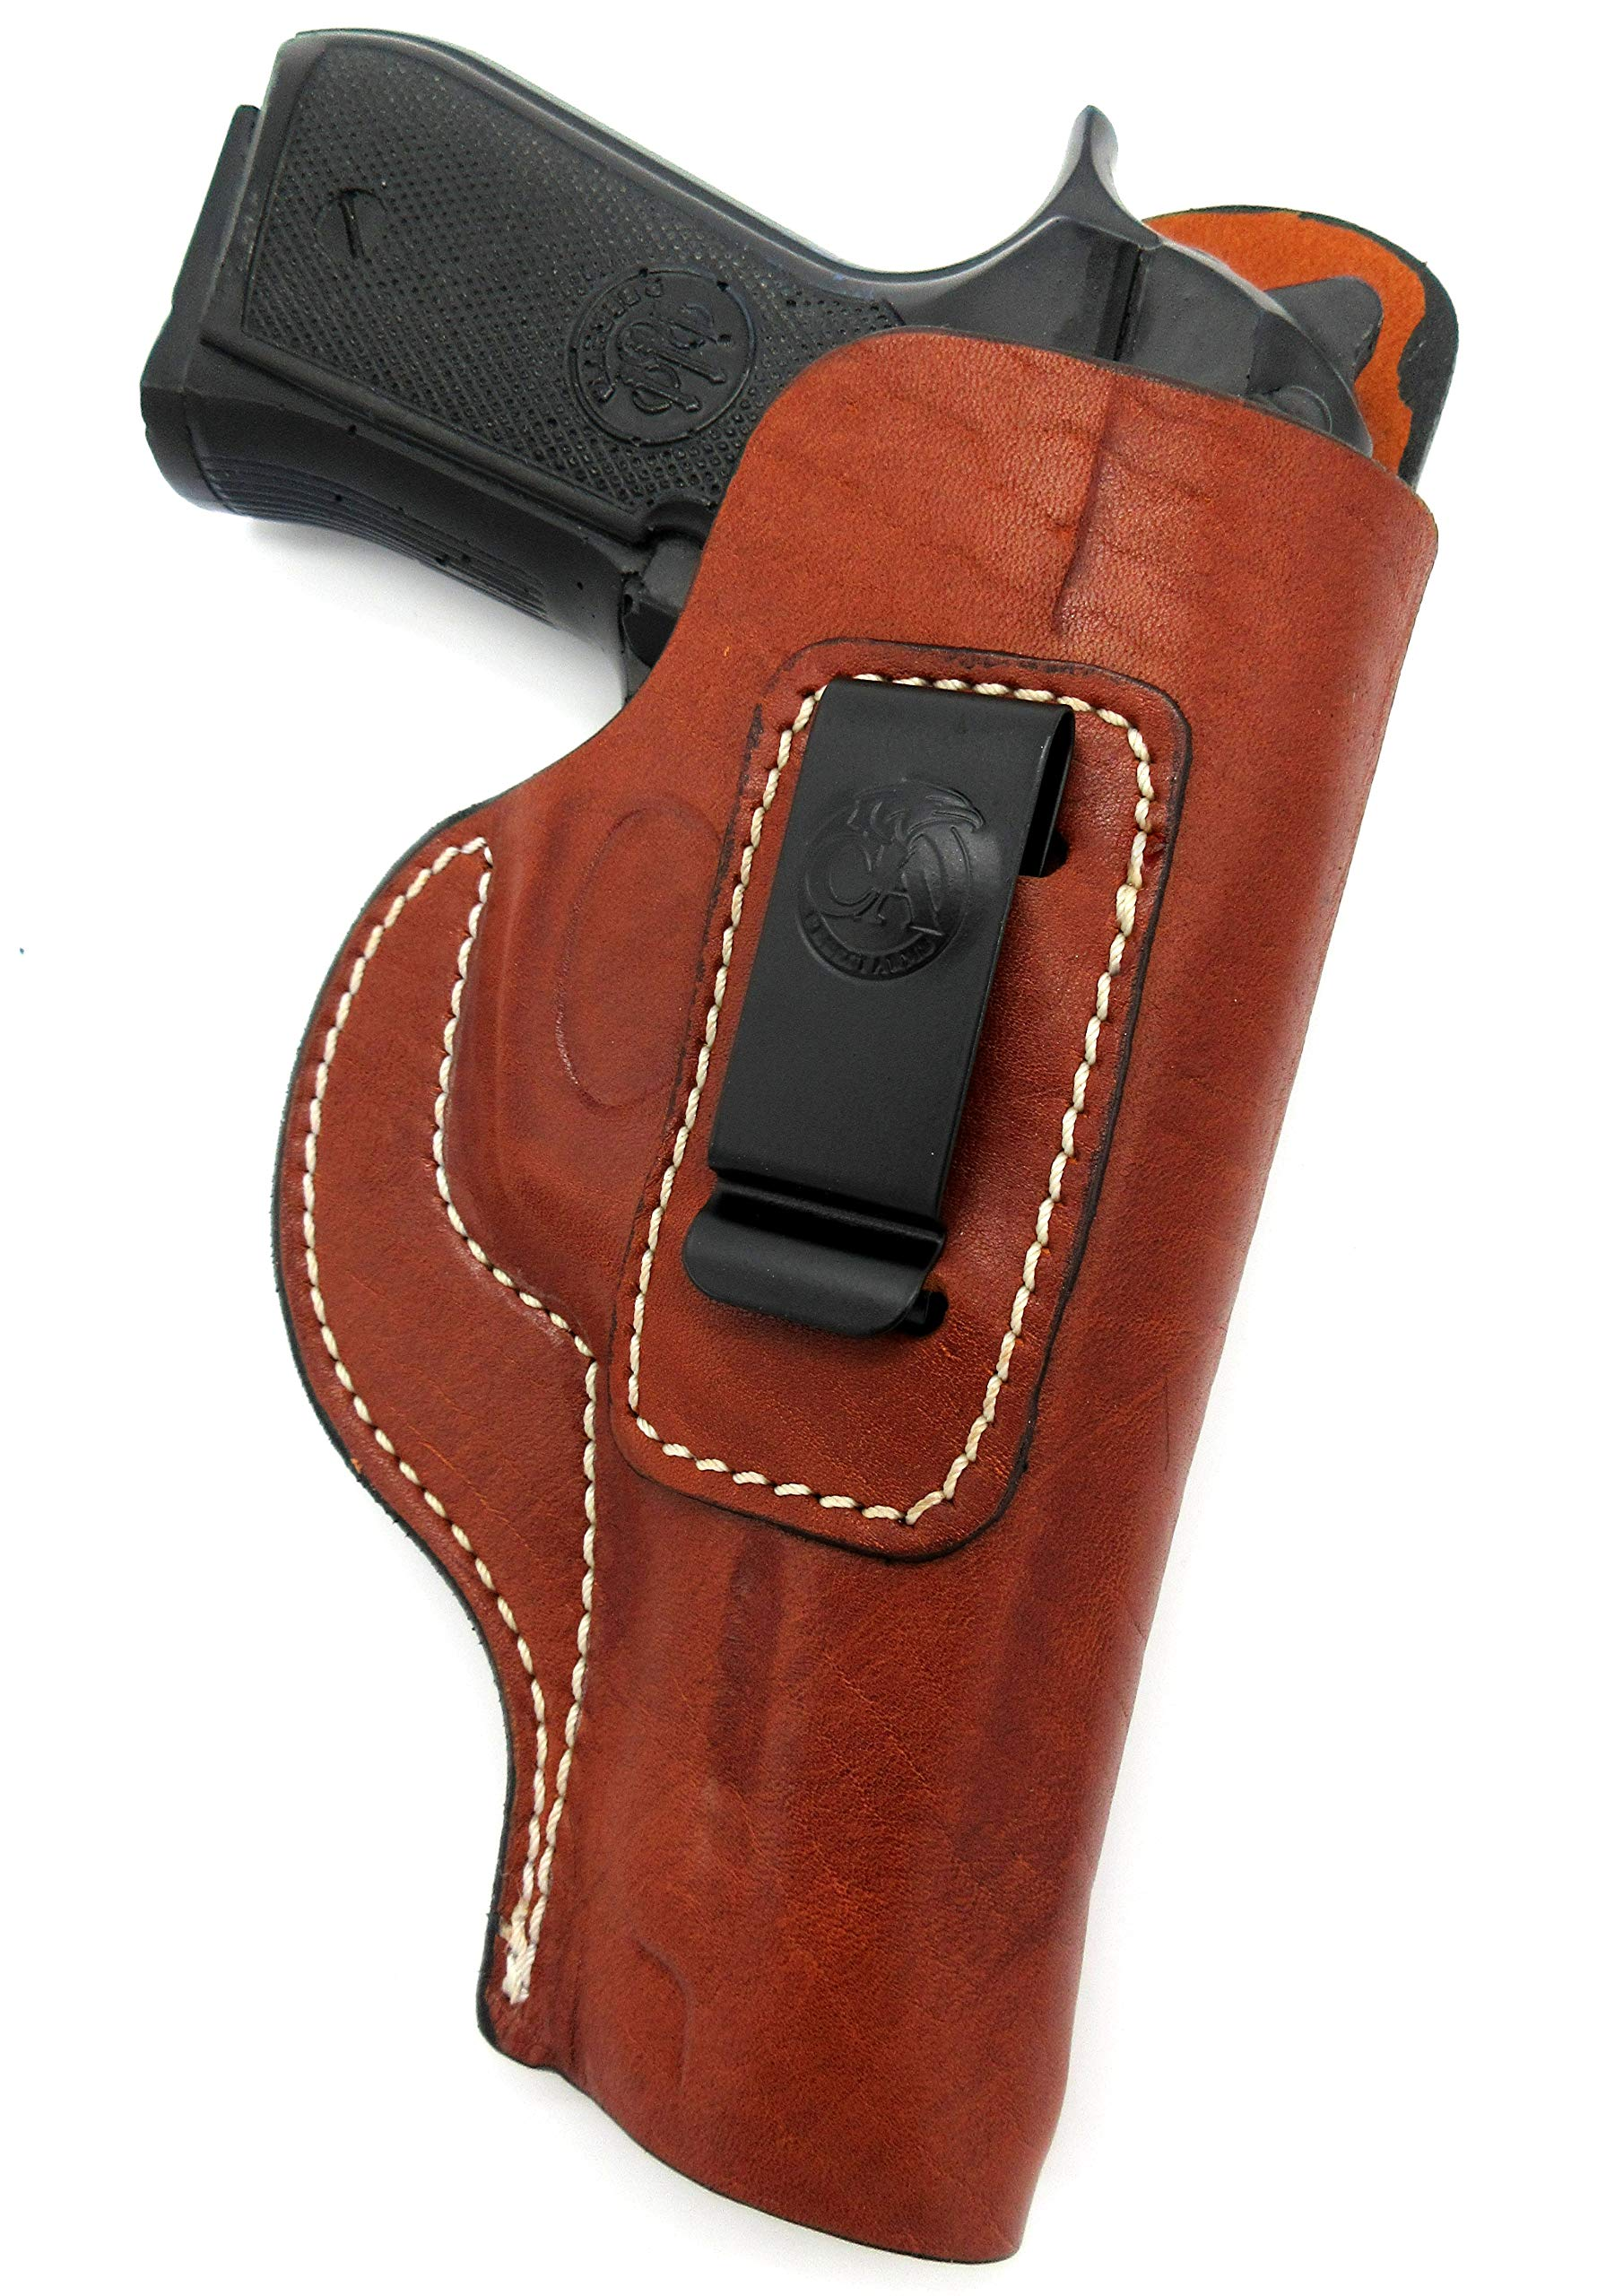 HOLSTERMART USA Concealment Holster Leather